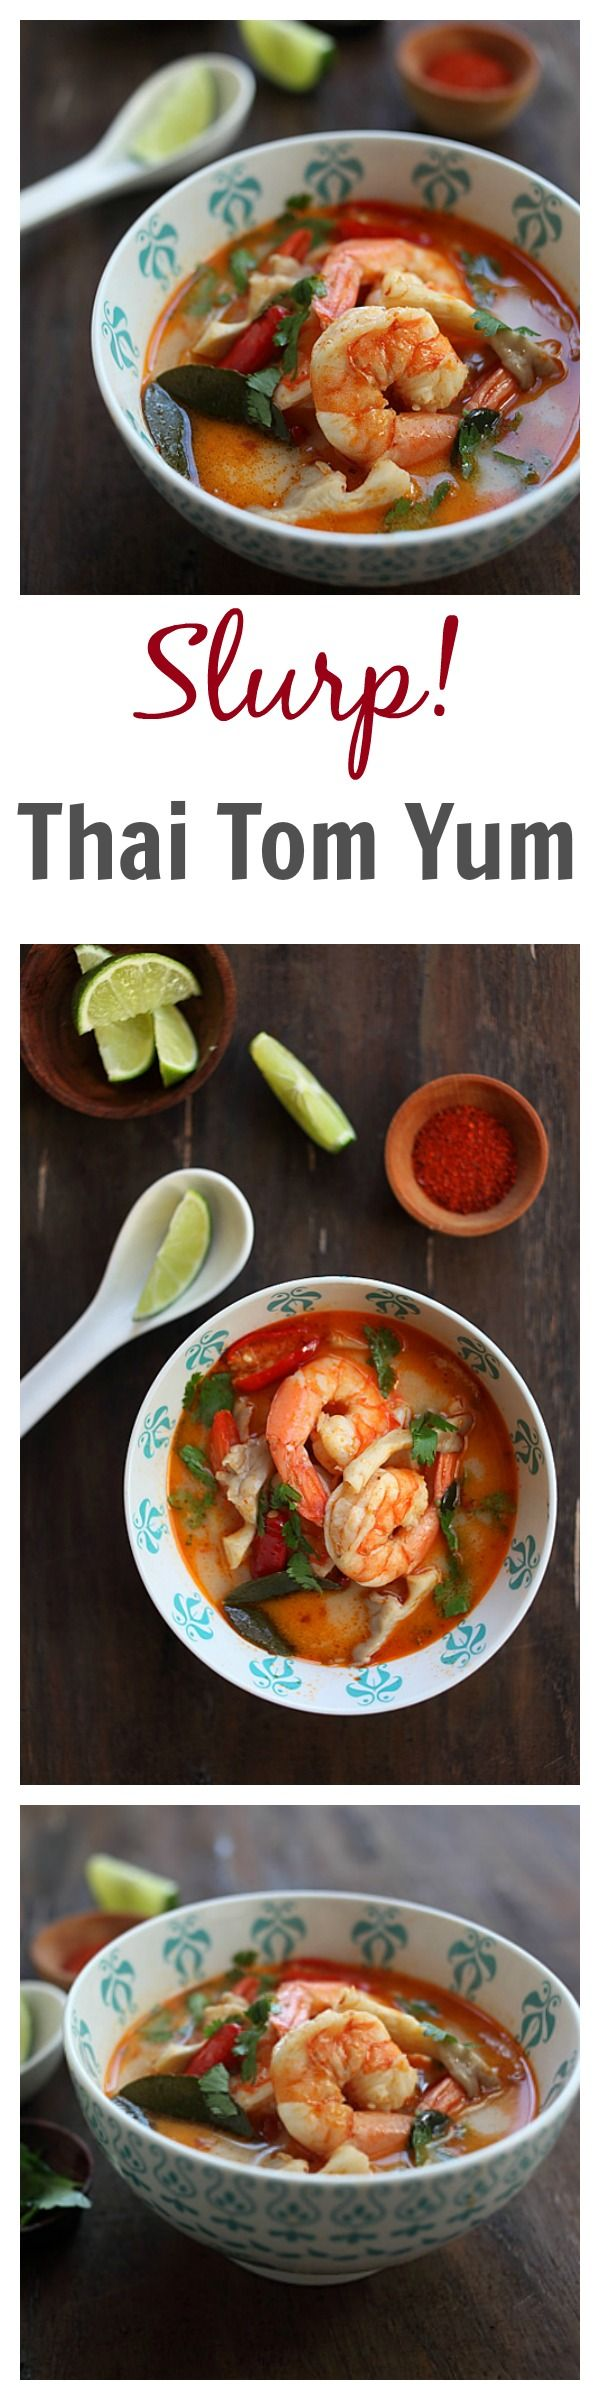 BEST, easy, and the most authentic Thai Tom Yum Soup recipe that tastes straight from Bangkok. Quick and no-hassle and better than your regular Thai restaurants. (Thai version of hot & sour soup.)